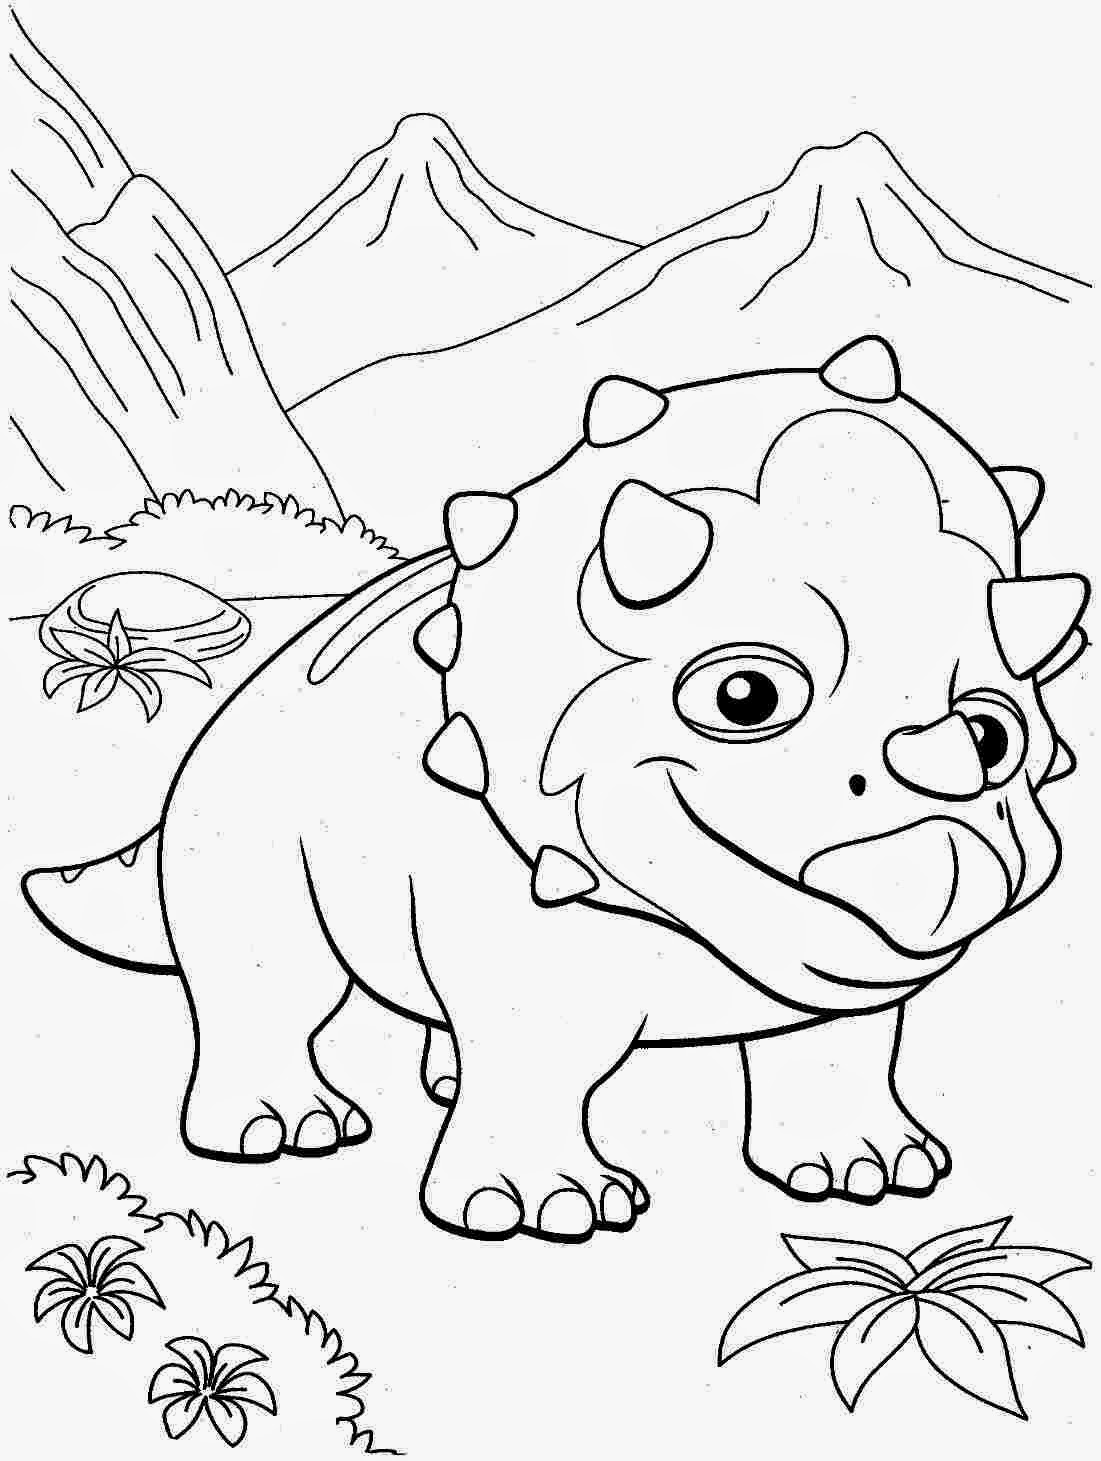 free dinosaur pictures to print and color free printable dinosaur coloring pages for kids pictures color and to print dinosaur free